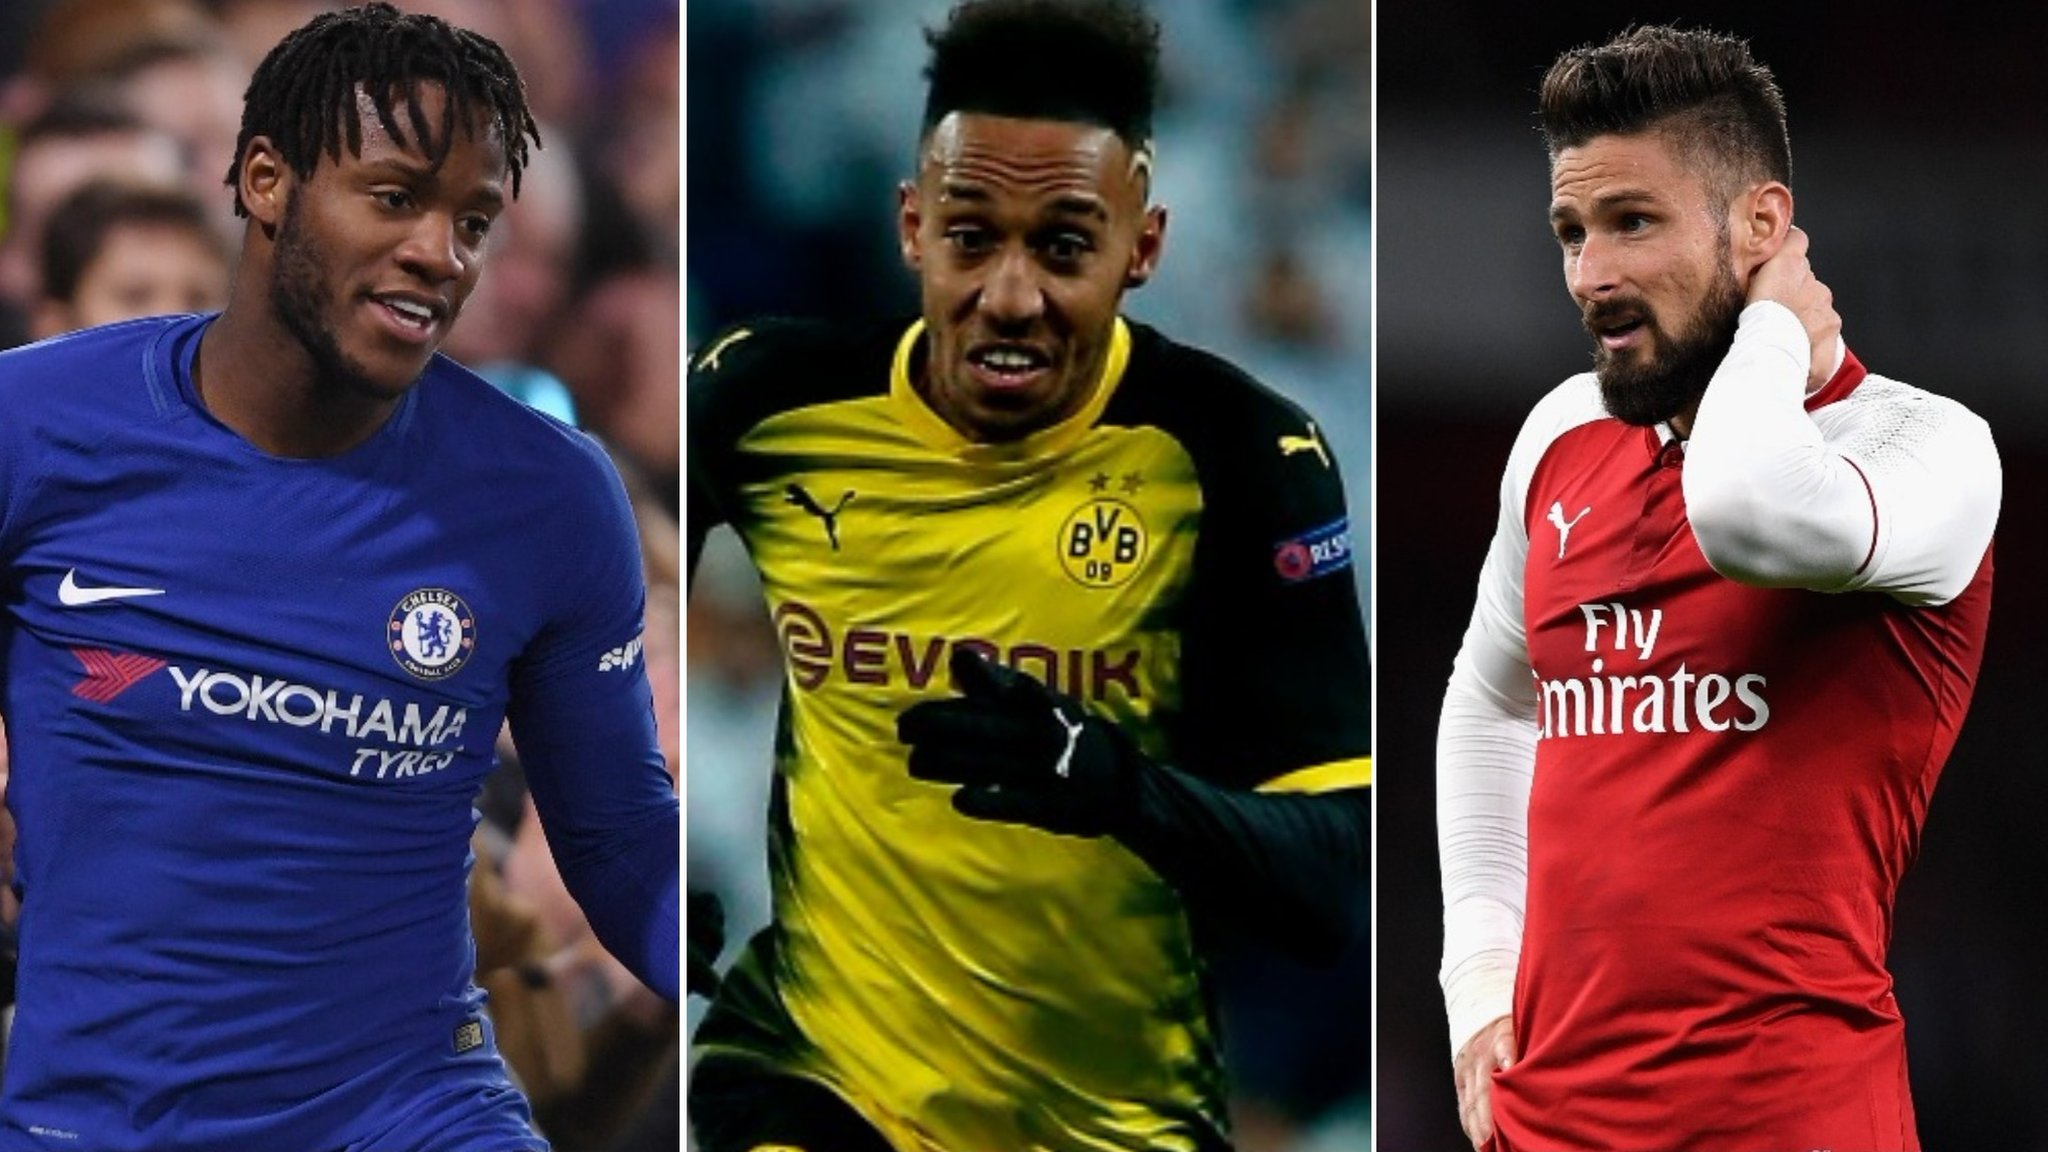 Aubameyang's Arsenal move hangs on Giroud & Batshuayi deals